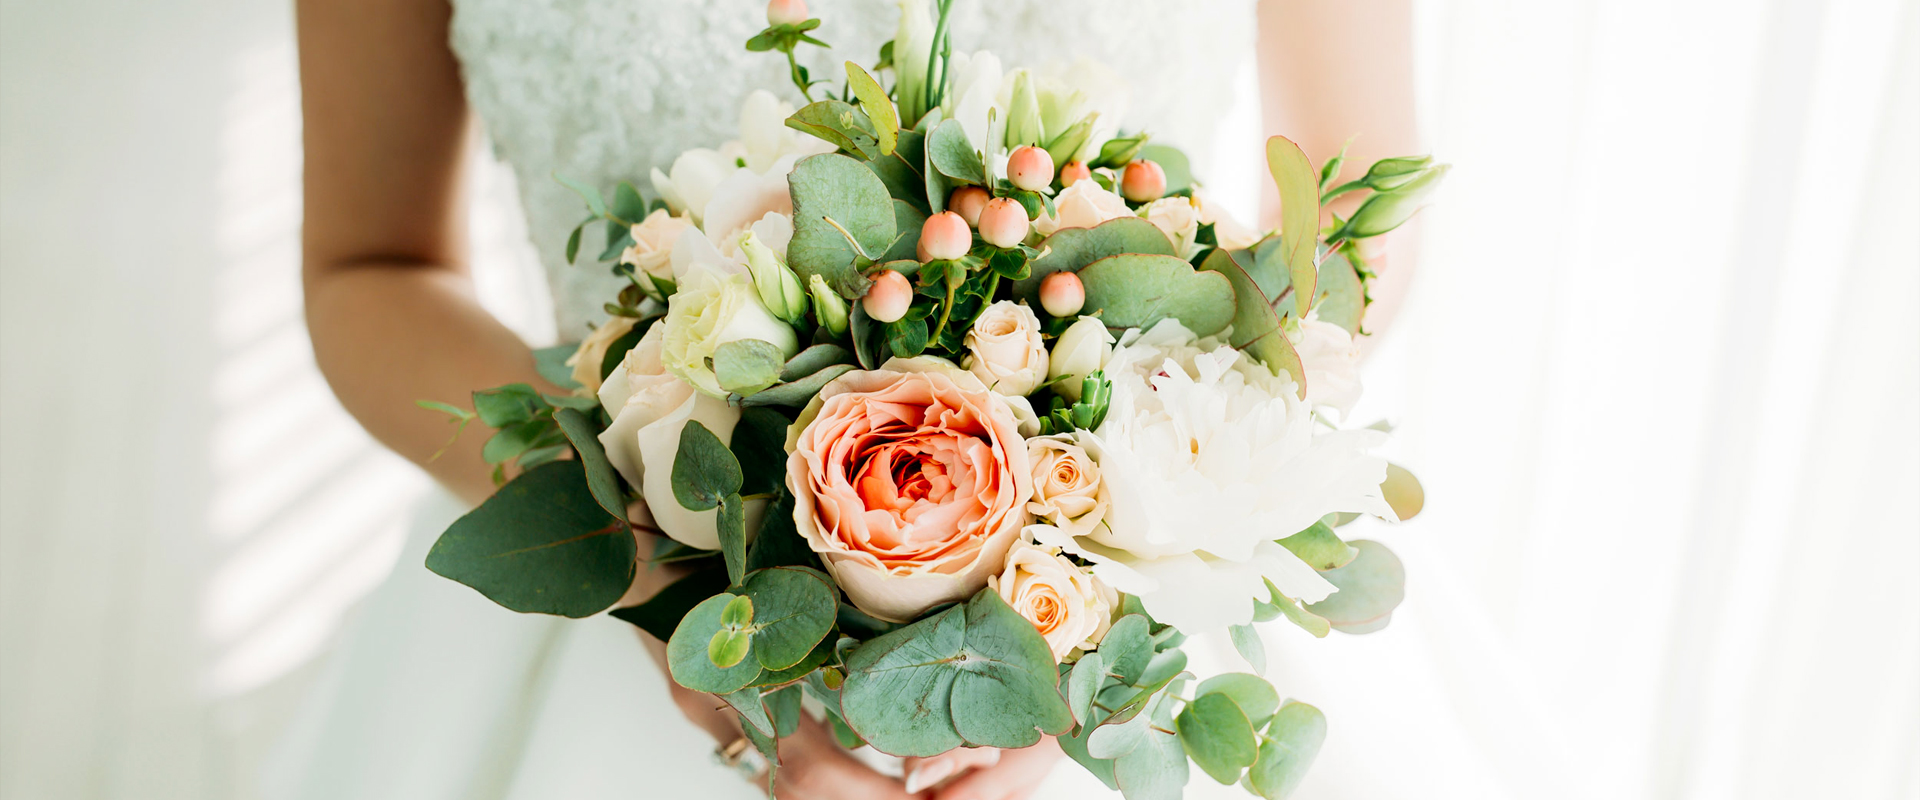 Bridal Bouquet Symbolic Meaning Of Flowers